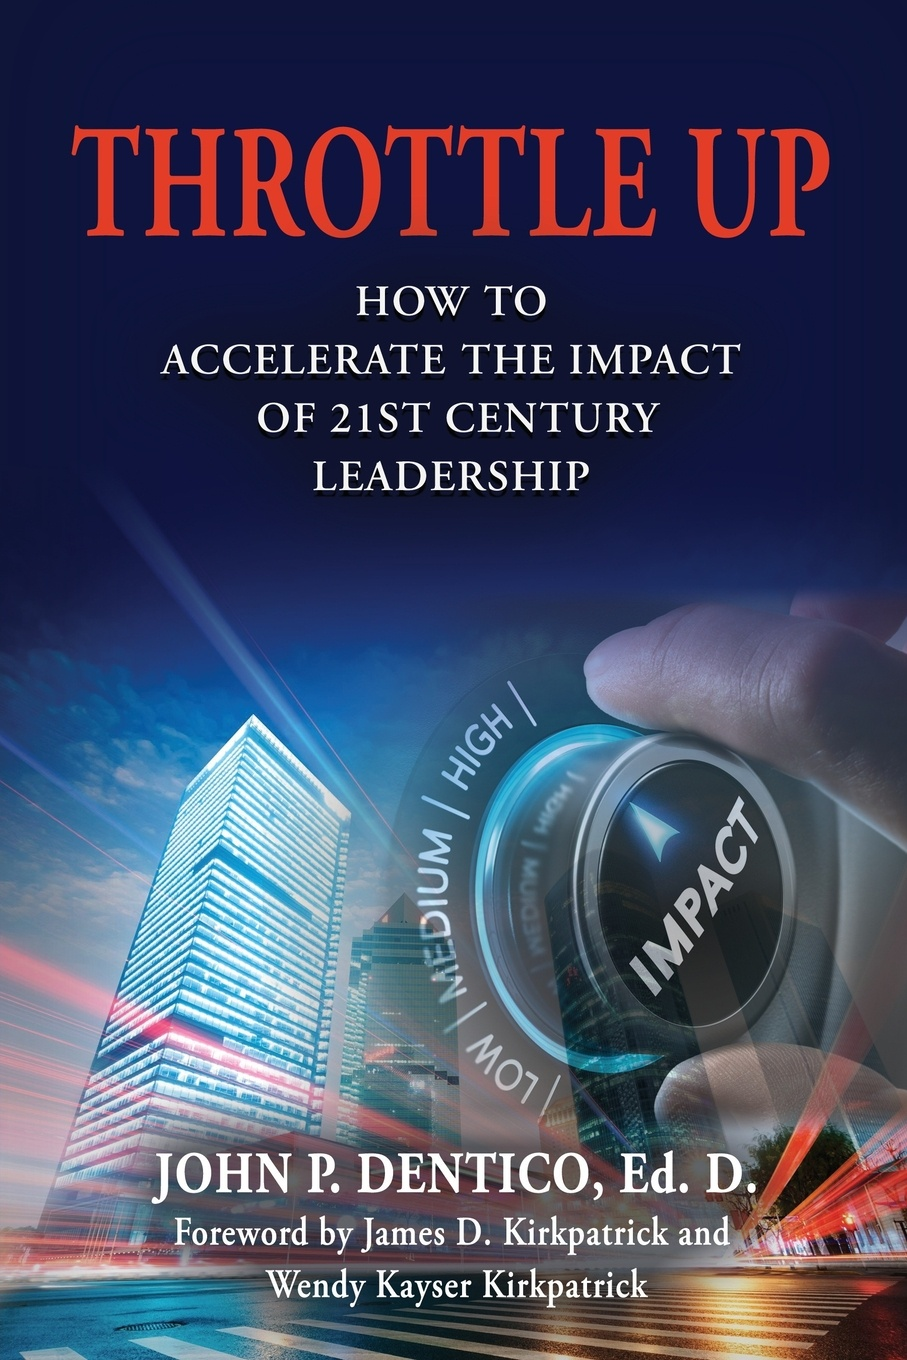 Фото - Ed. D John P. Dentico Throttle Up. How to Accelerate the Impact Of 21st Century Leadership harald welzer climate wars what people will be killed for in the 21st century